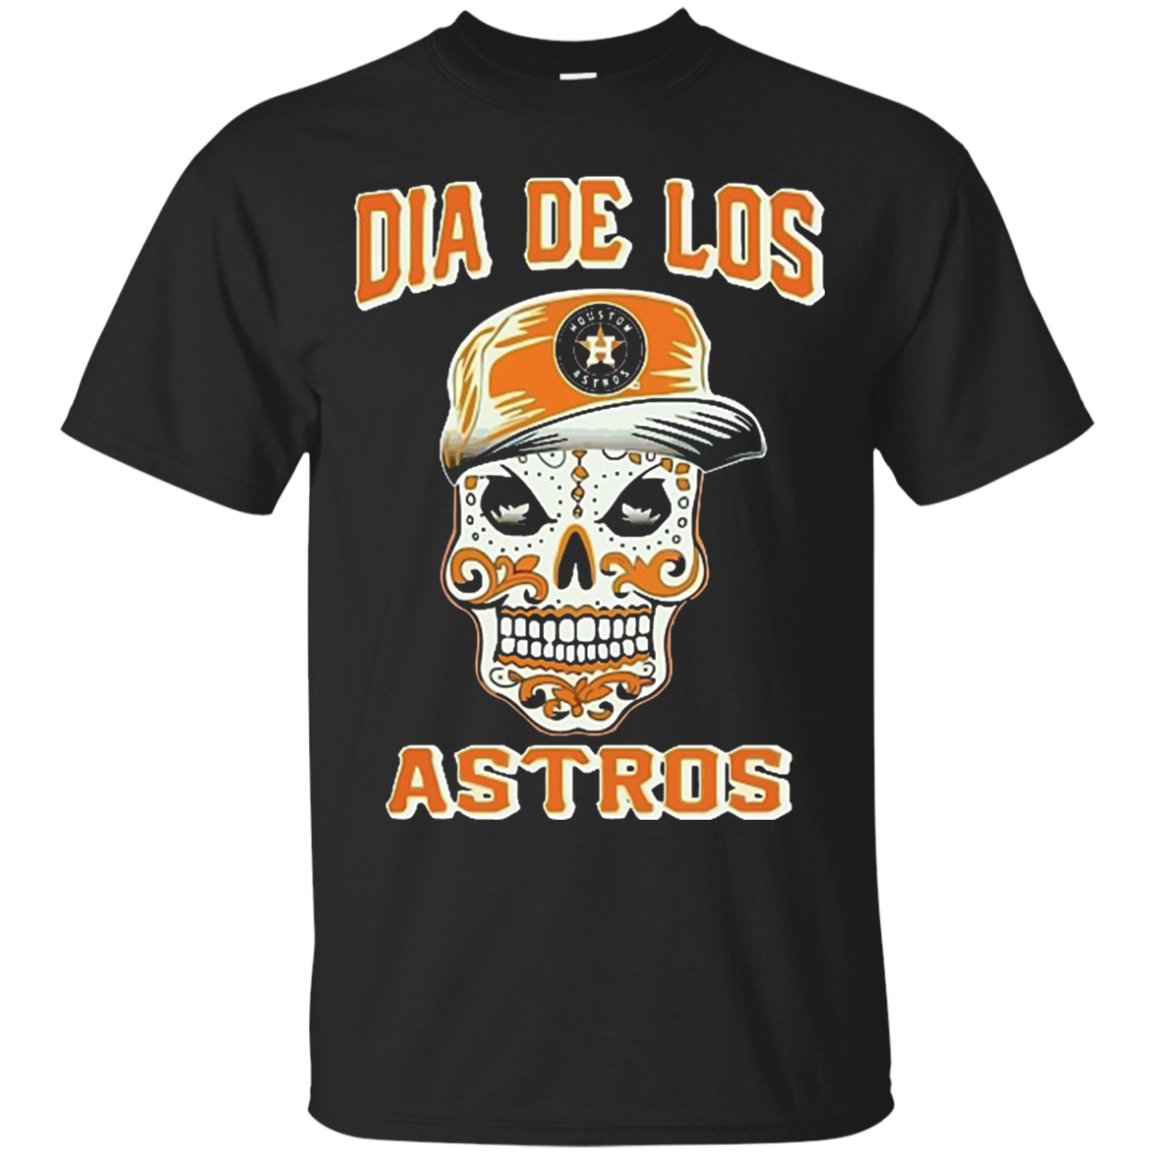 Dia De Los Astros Houston Astros fan Cotton T Shirt Men